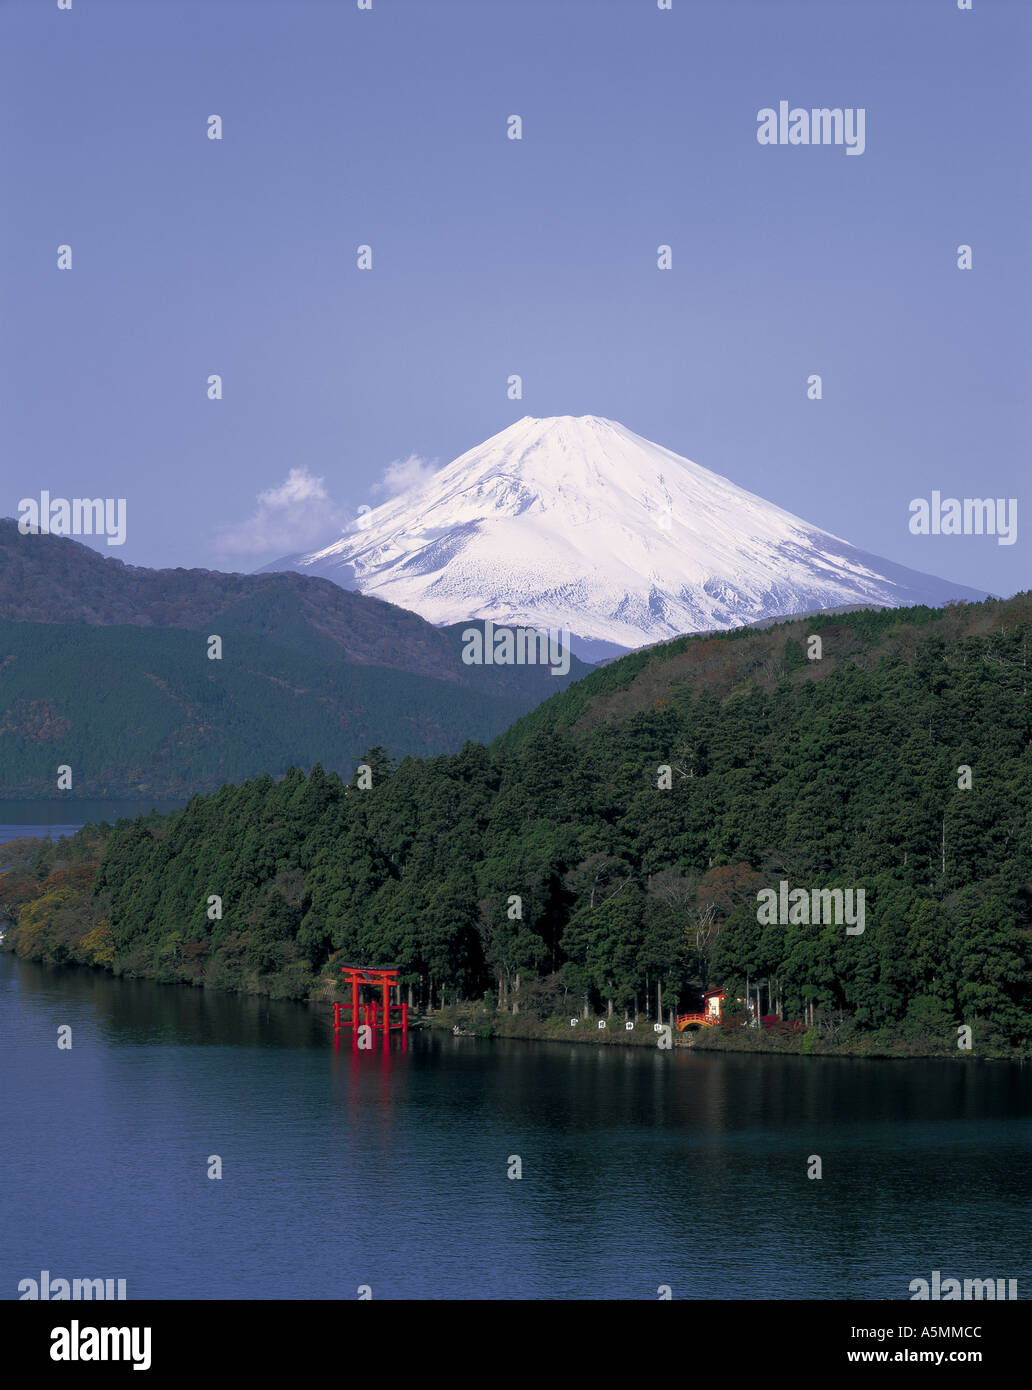 Mt Fuji and Lake Ashi Japan - Stock Image